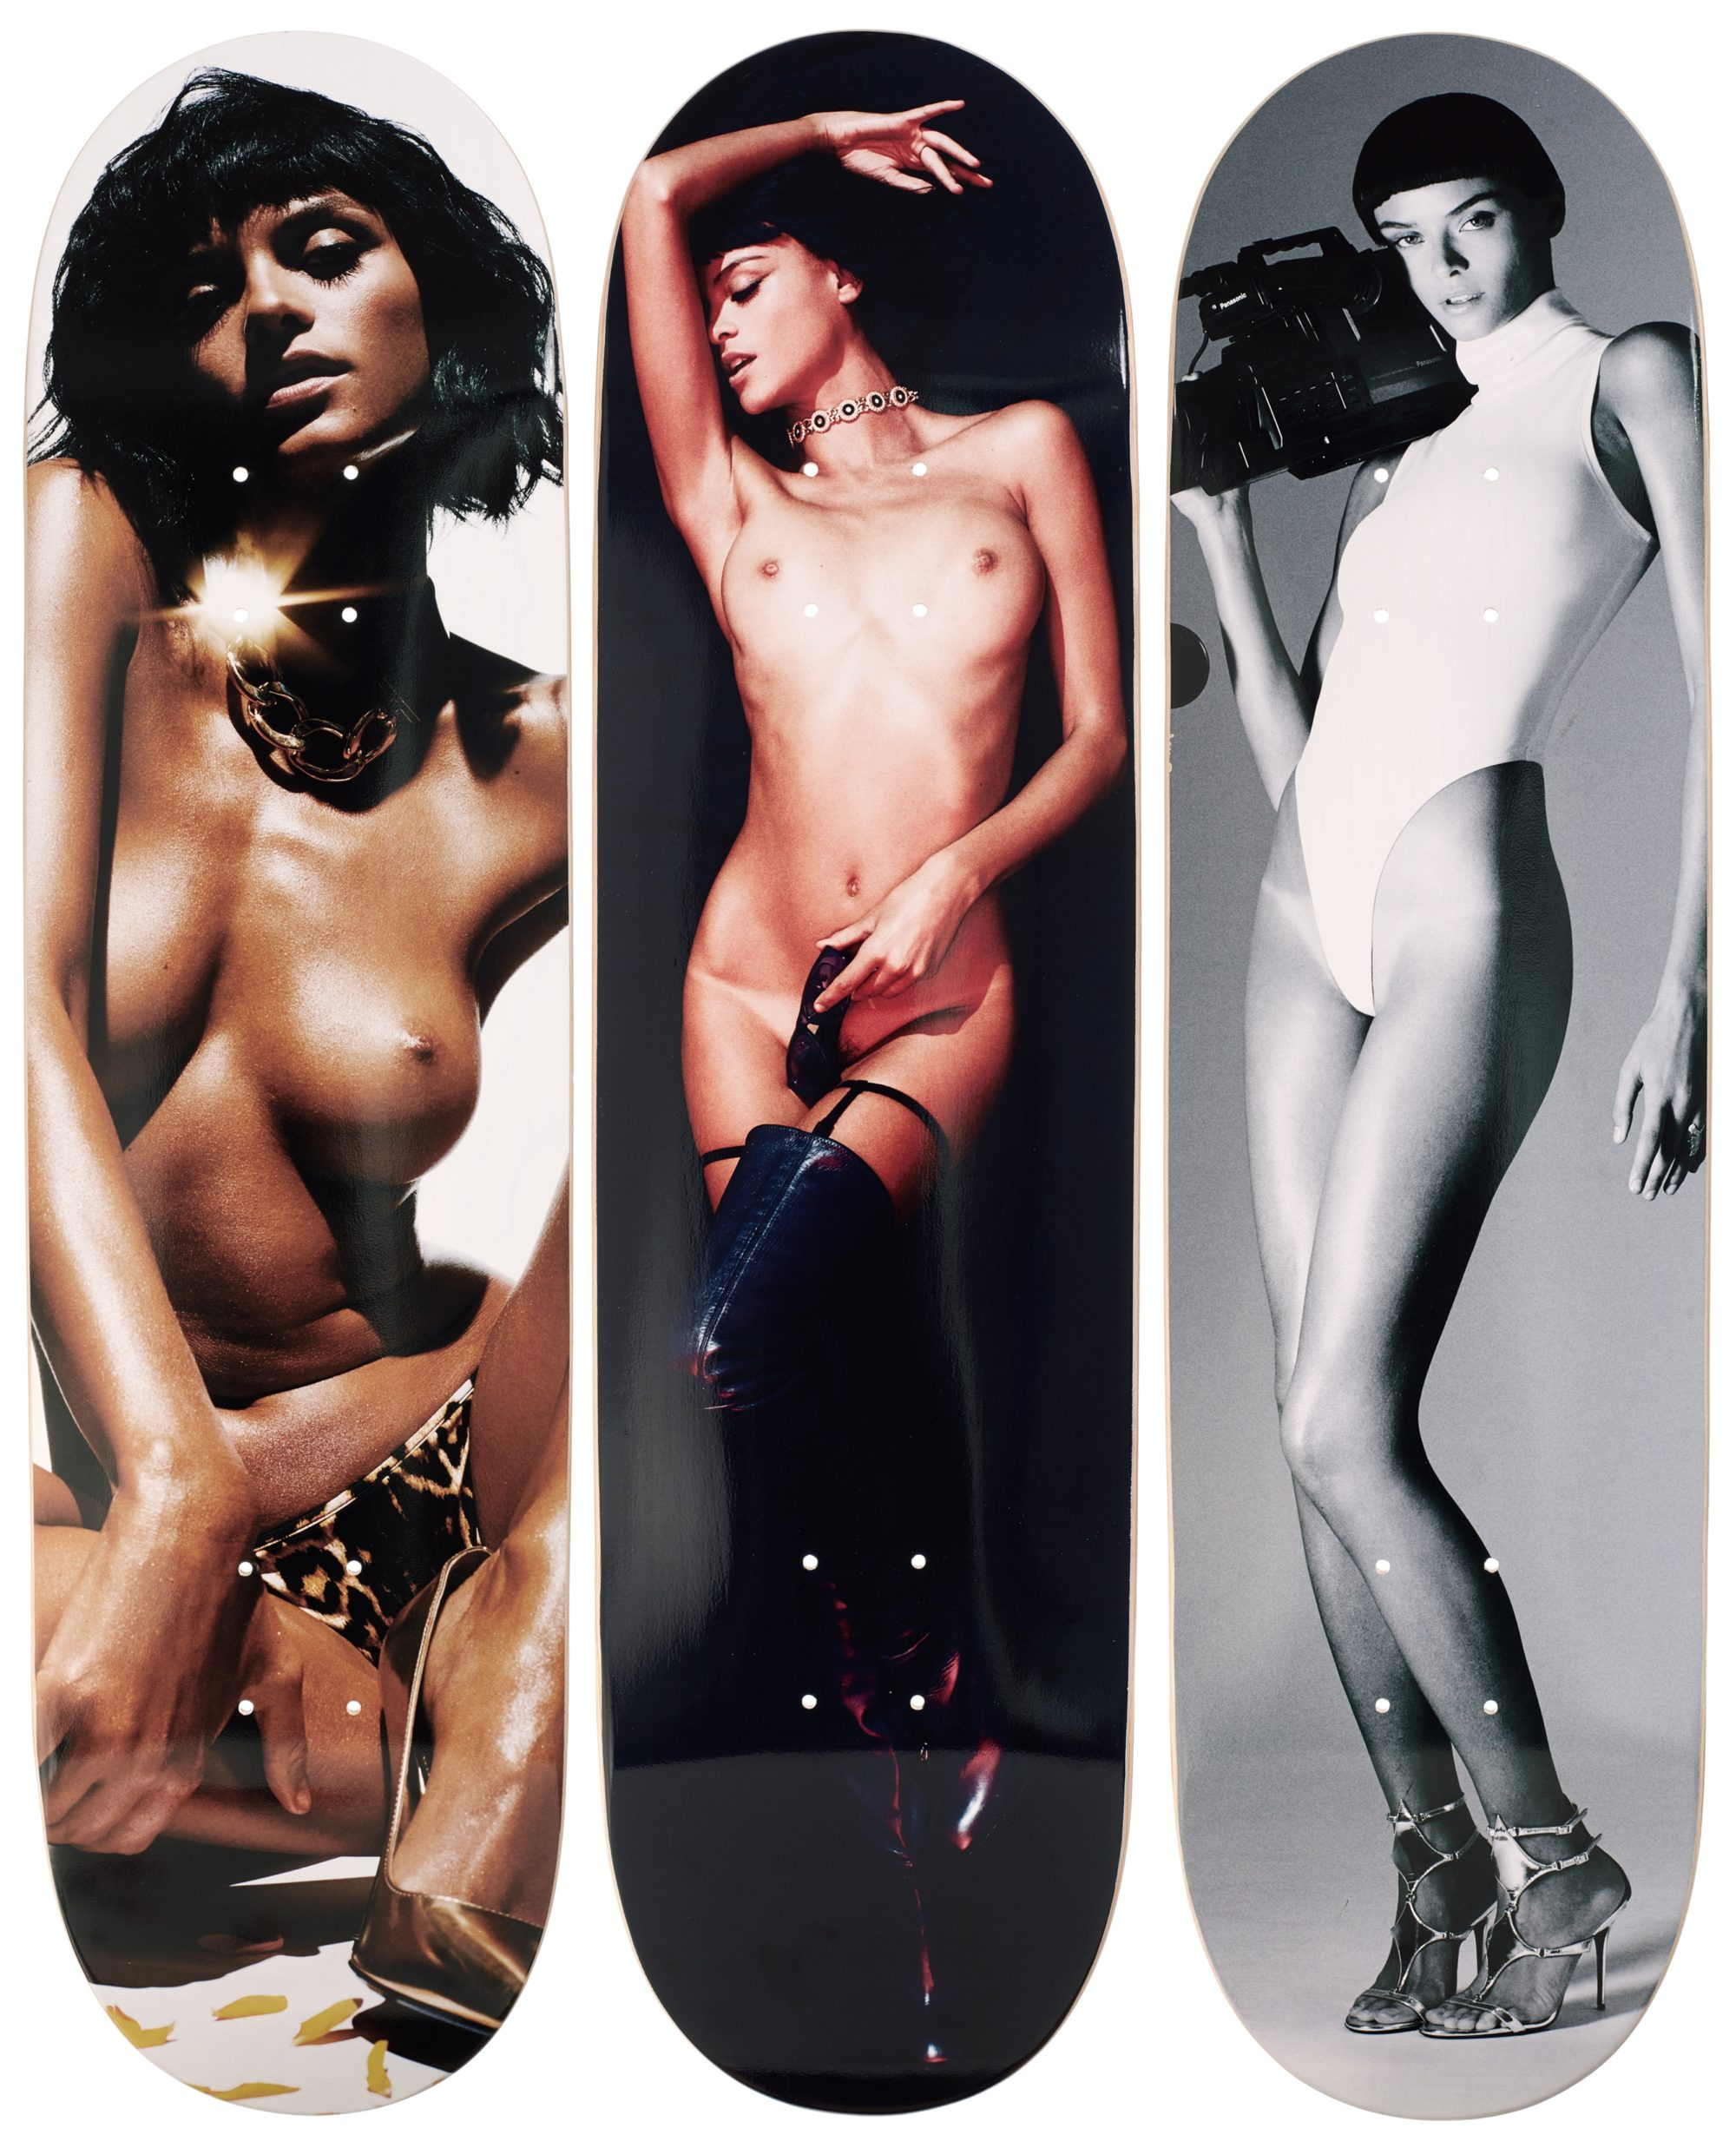 Marian Sell Skateboards Lais Oliveira 03